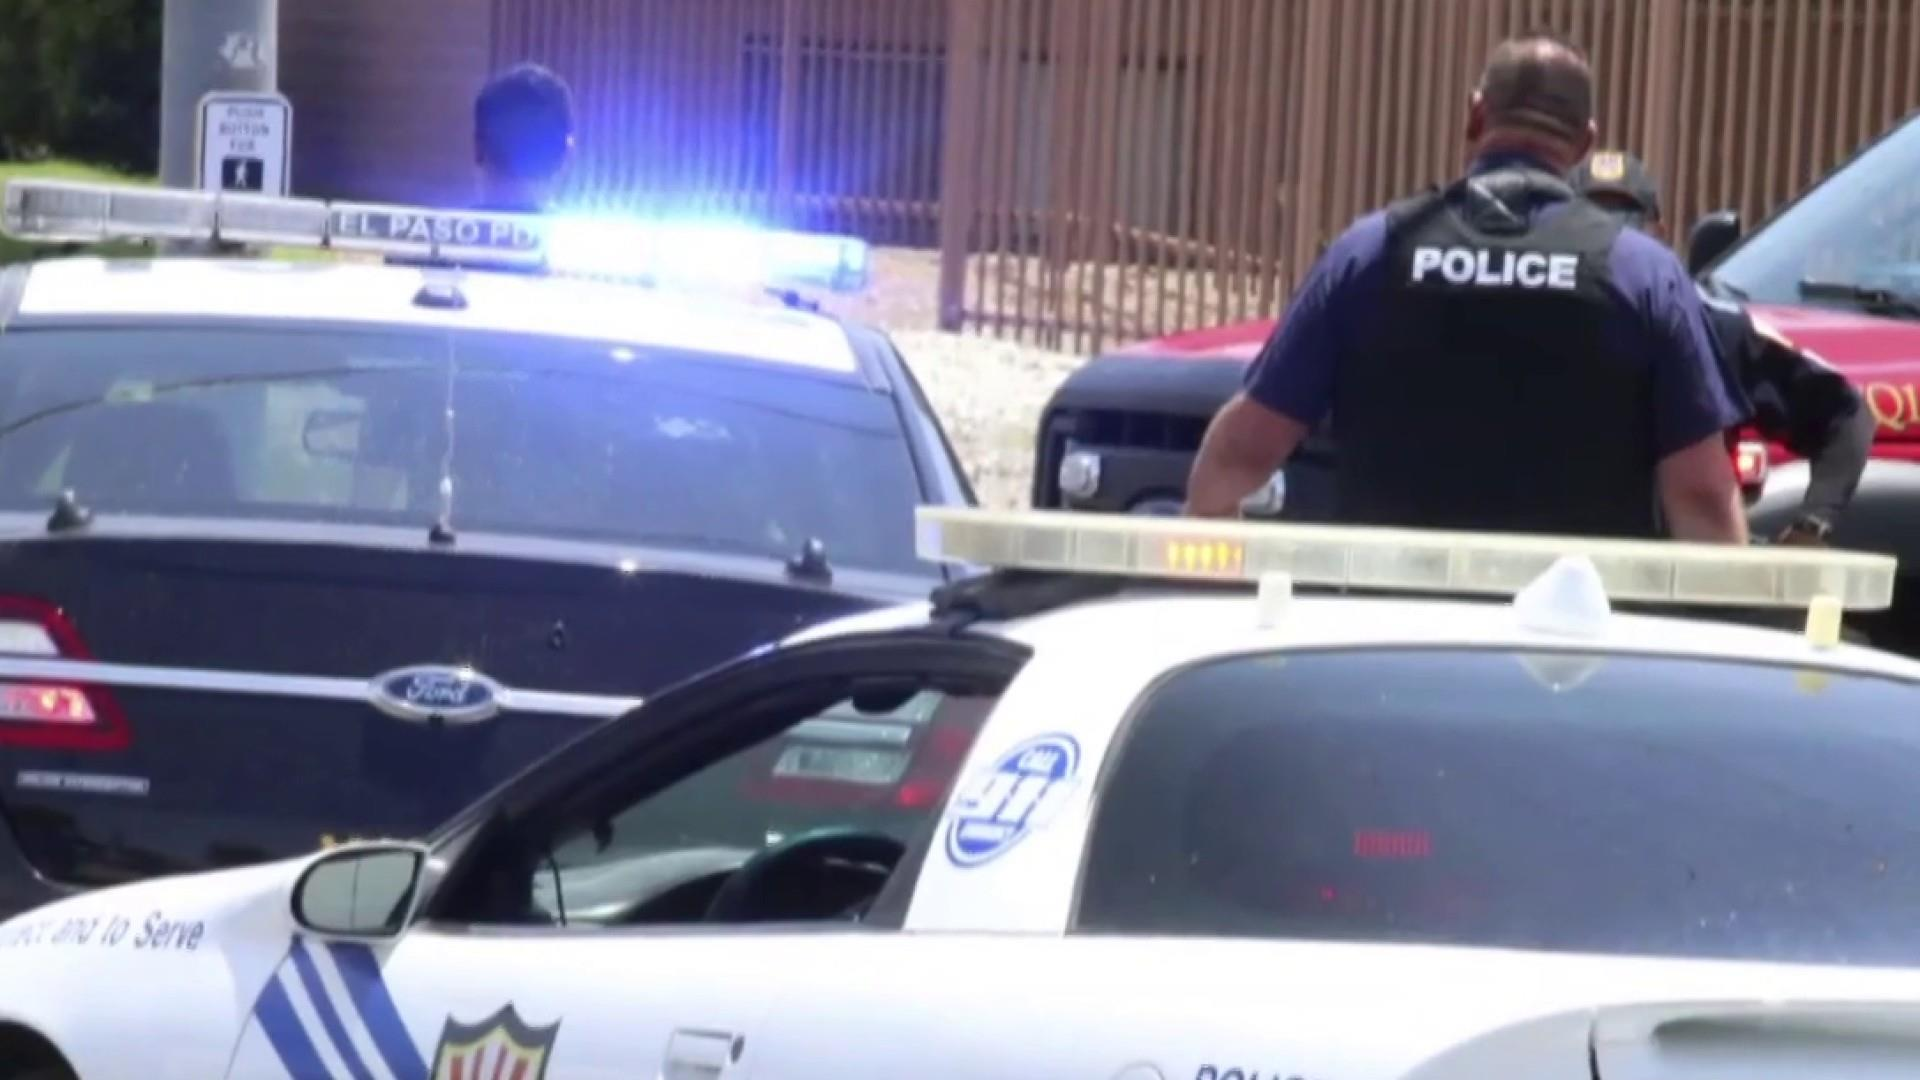 At least 29 dead, 53 injured in mass shootings in El Paso and Dayton